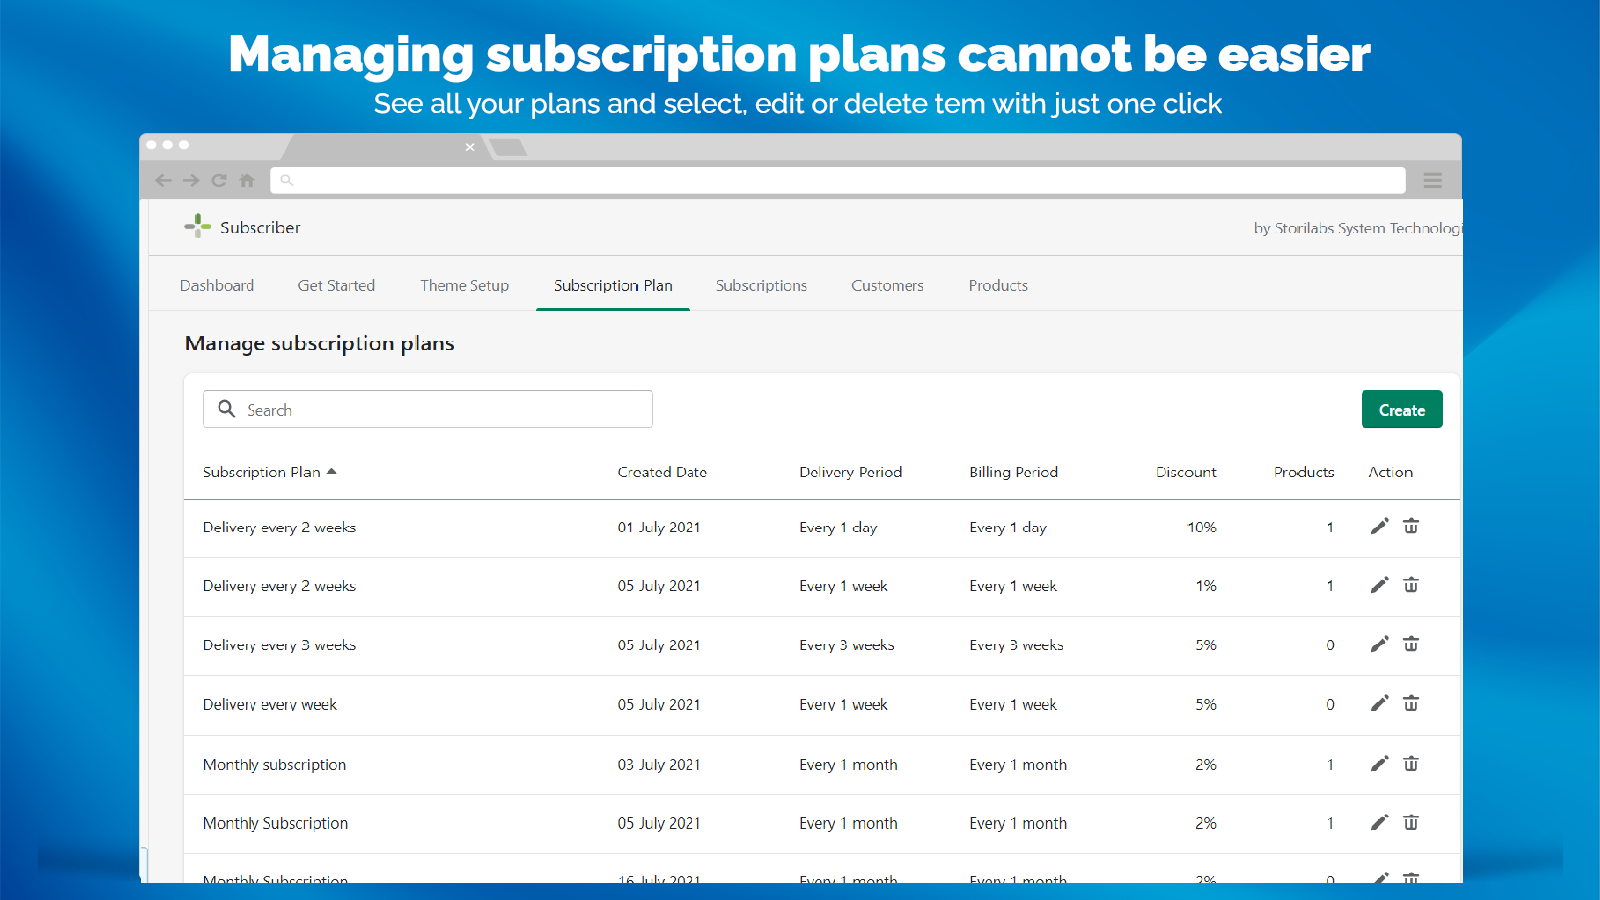 Managing Subscription Plans Made Easier